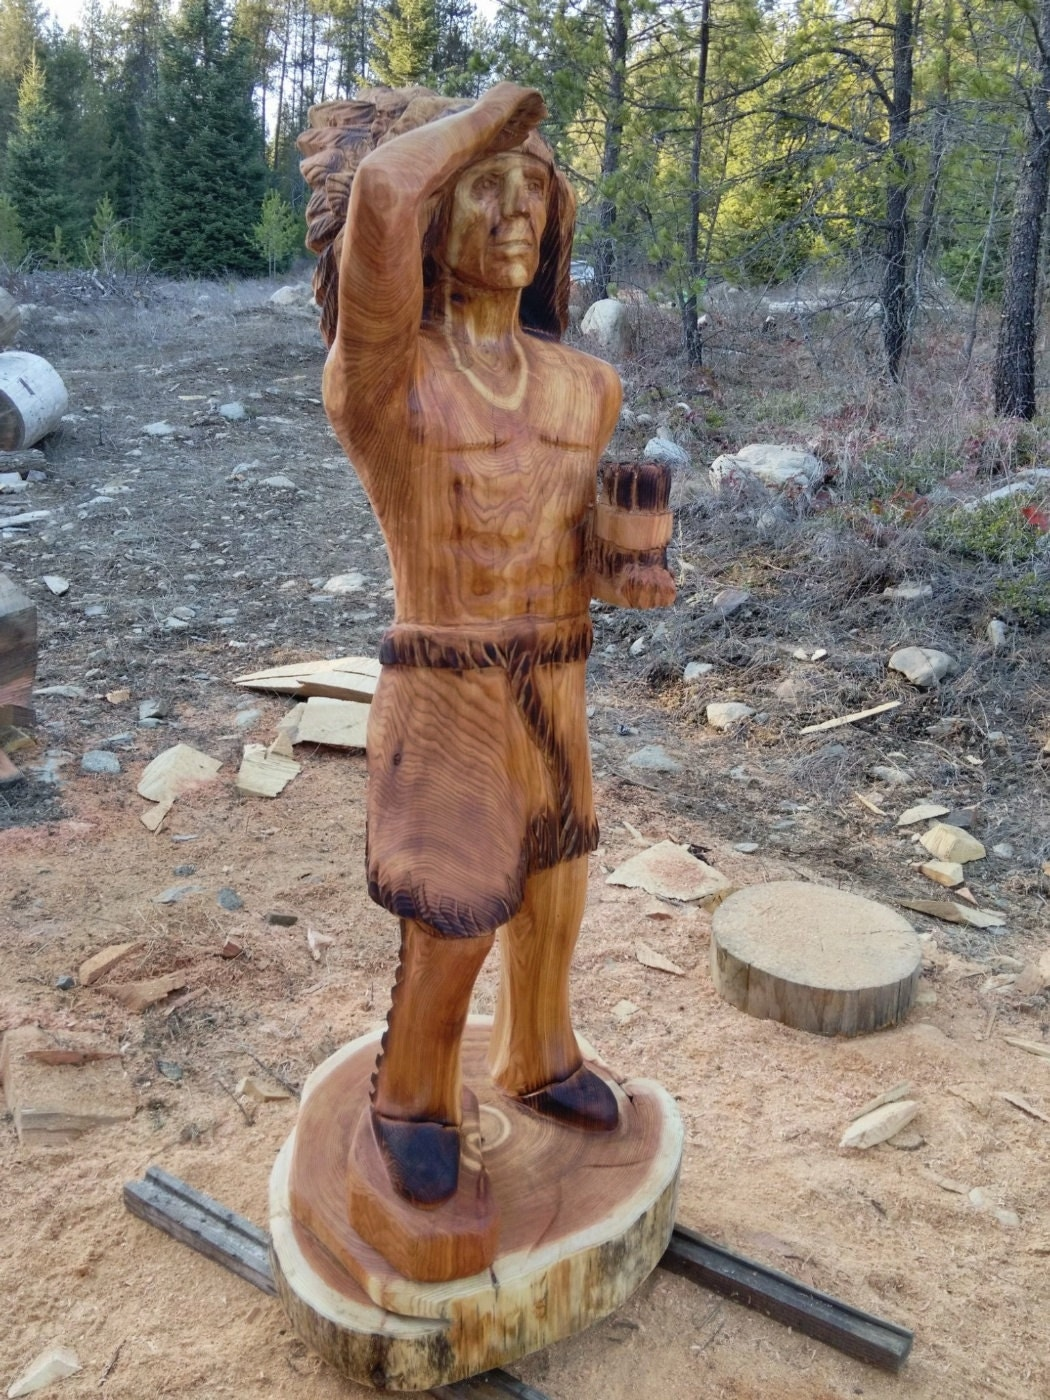 Cigar store indian chainsaw carving sculpture by